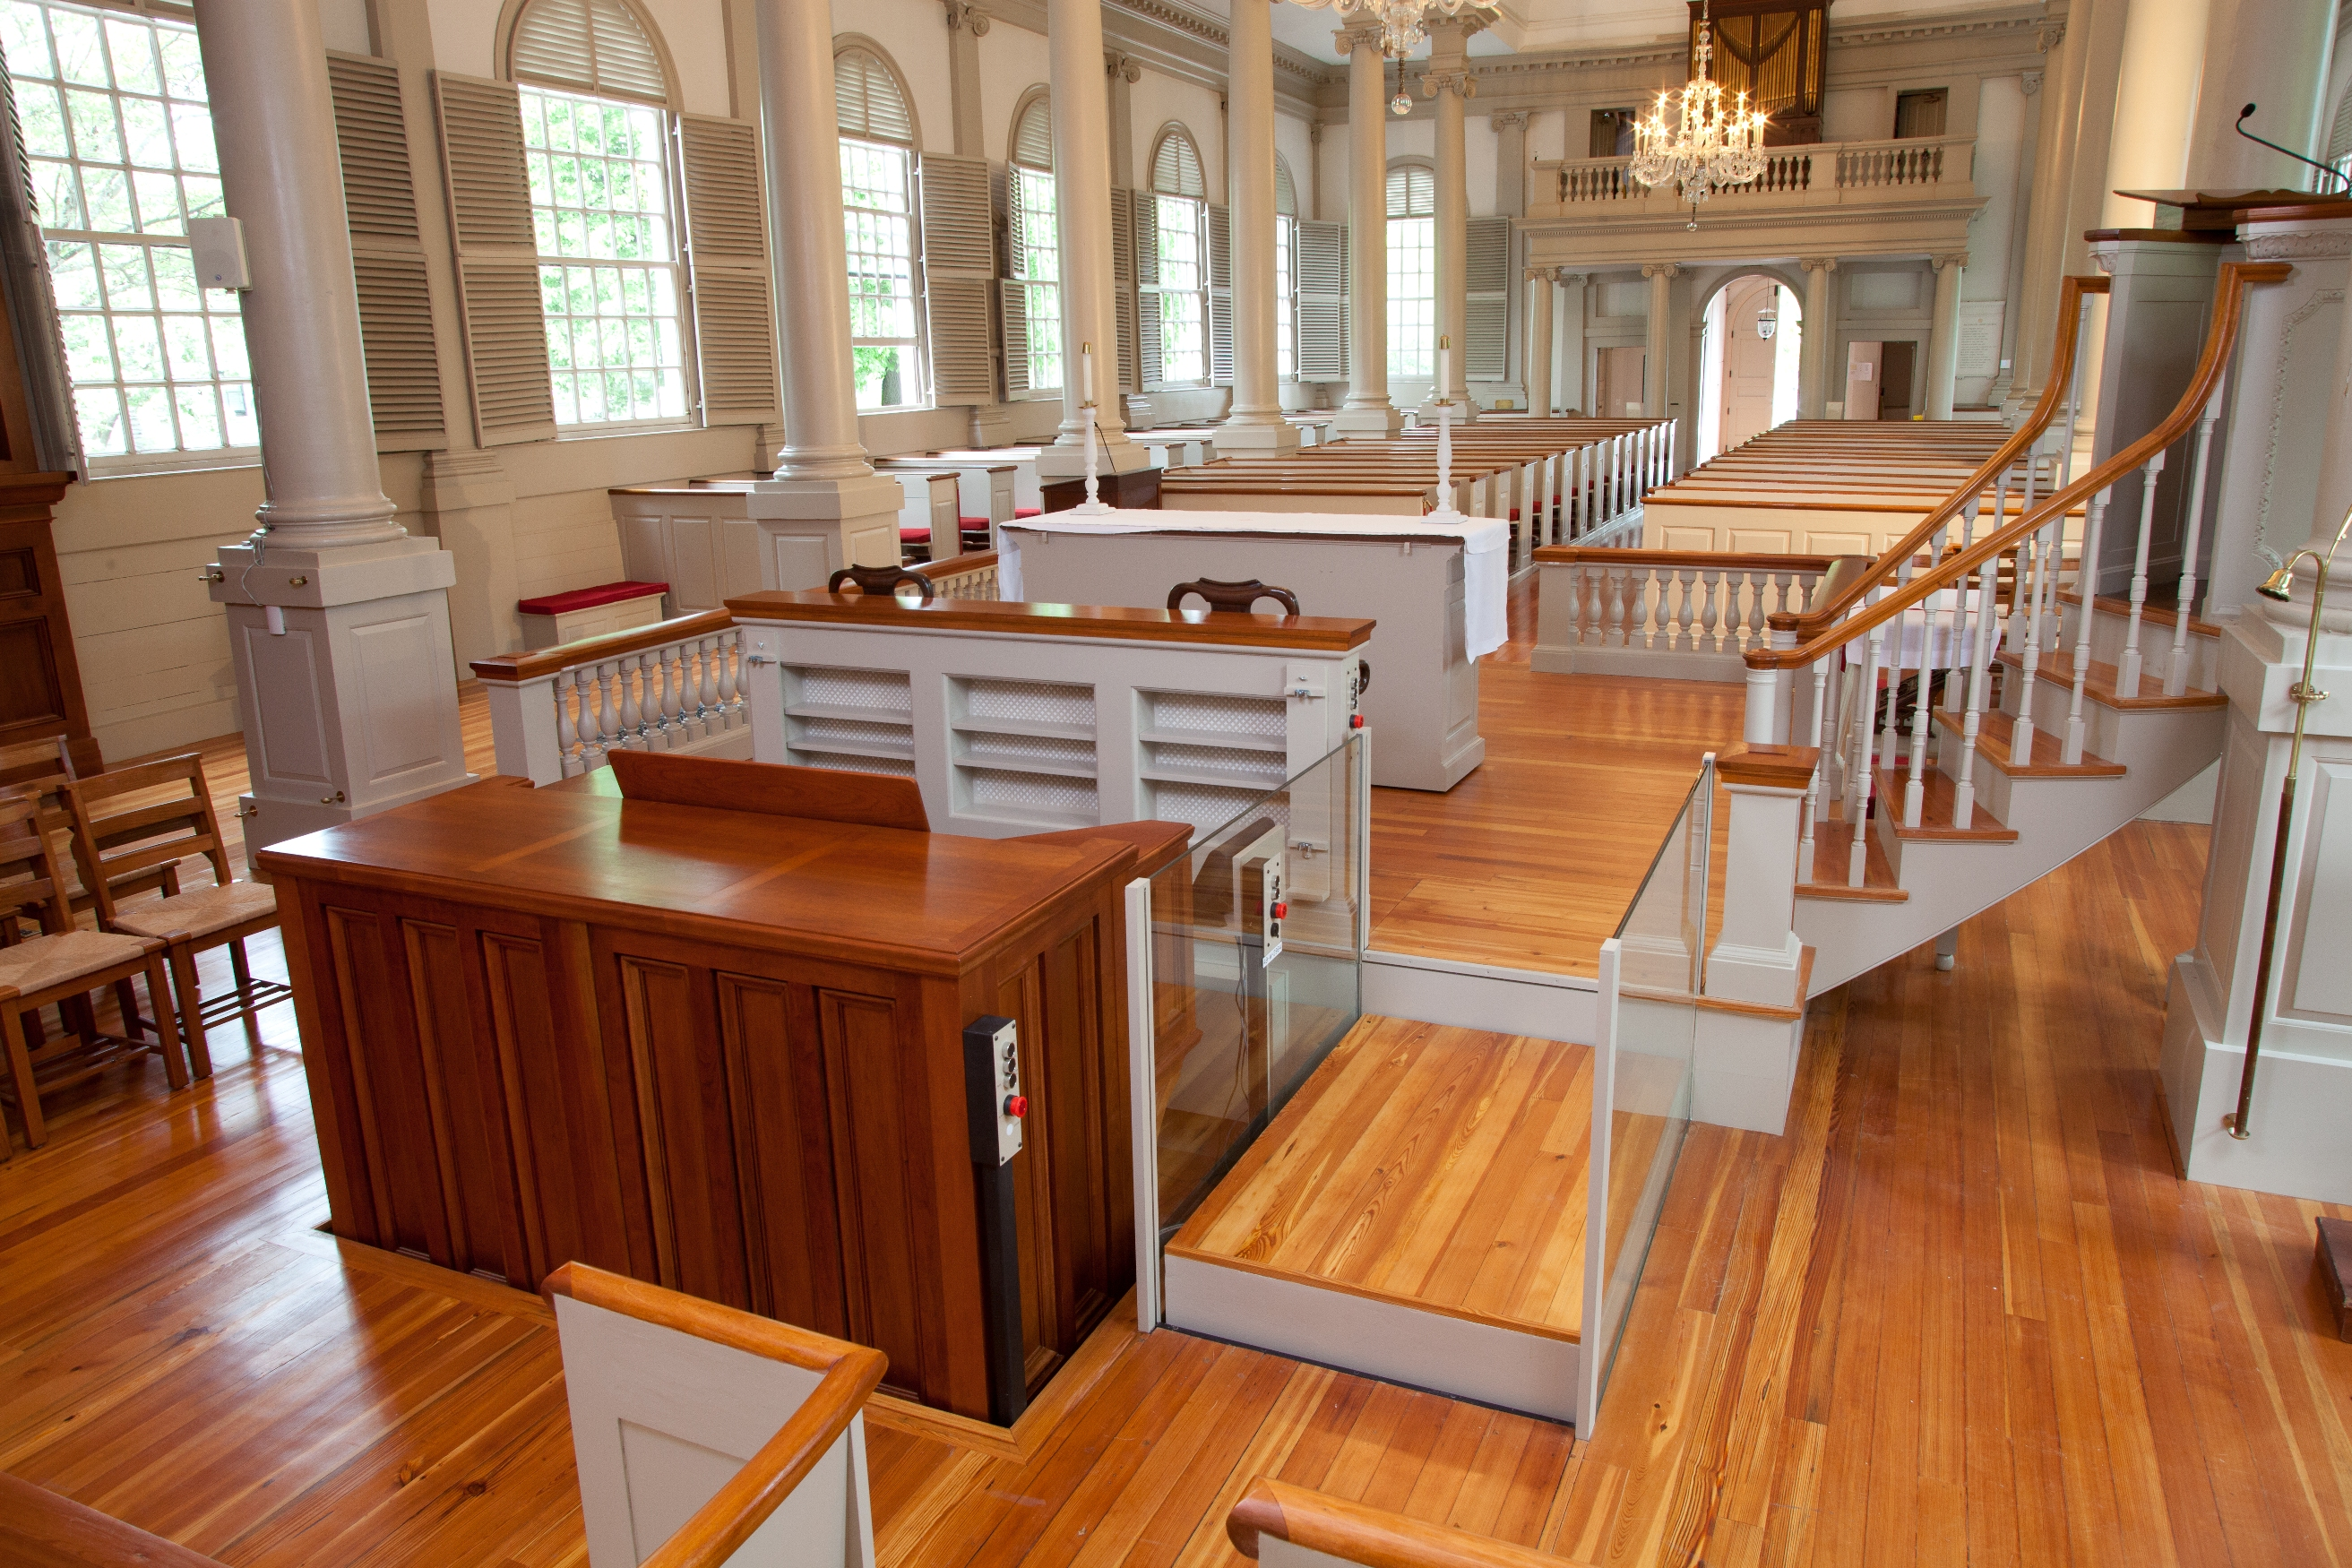 Church application with roll-up barriers positioned under the floor allowing ambulatory access to and from the organ. Lift utilizes glass stationary sidewalls to blending in with surrounding aesthetics. Lift function readily available, independently operable.